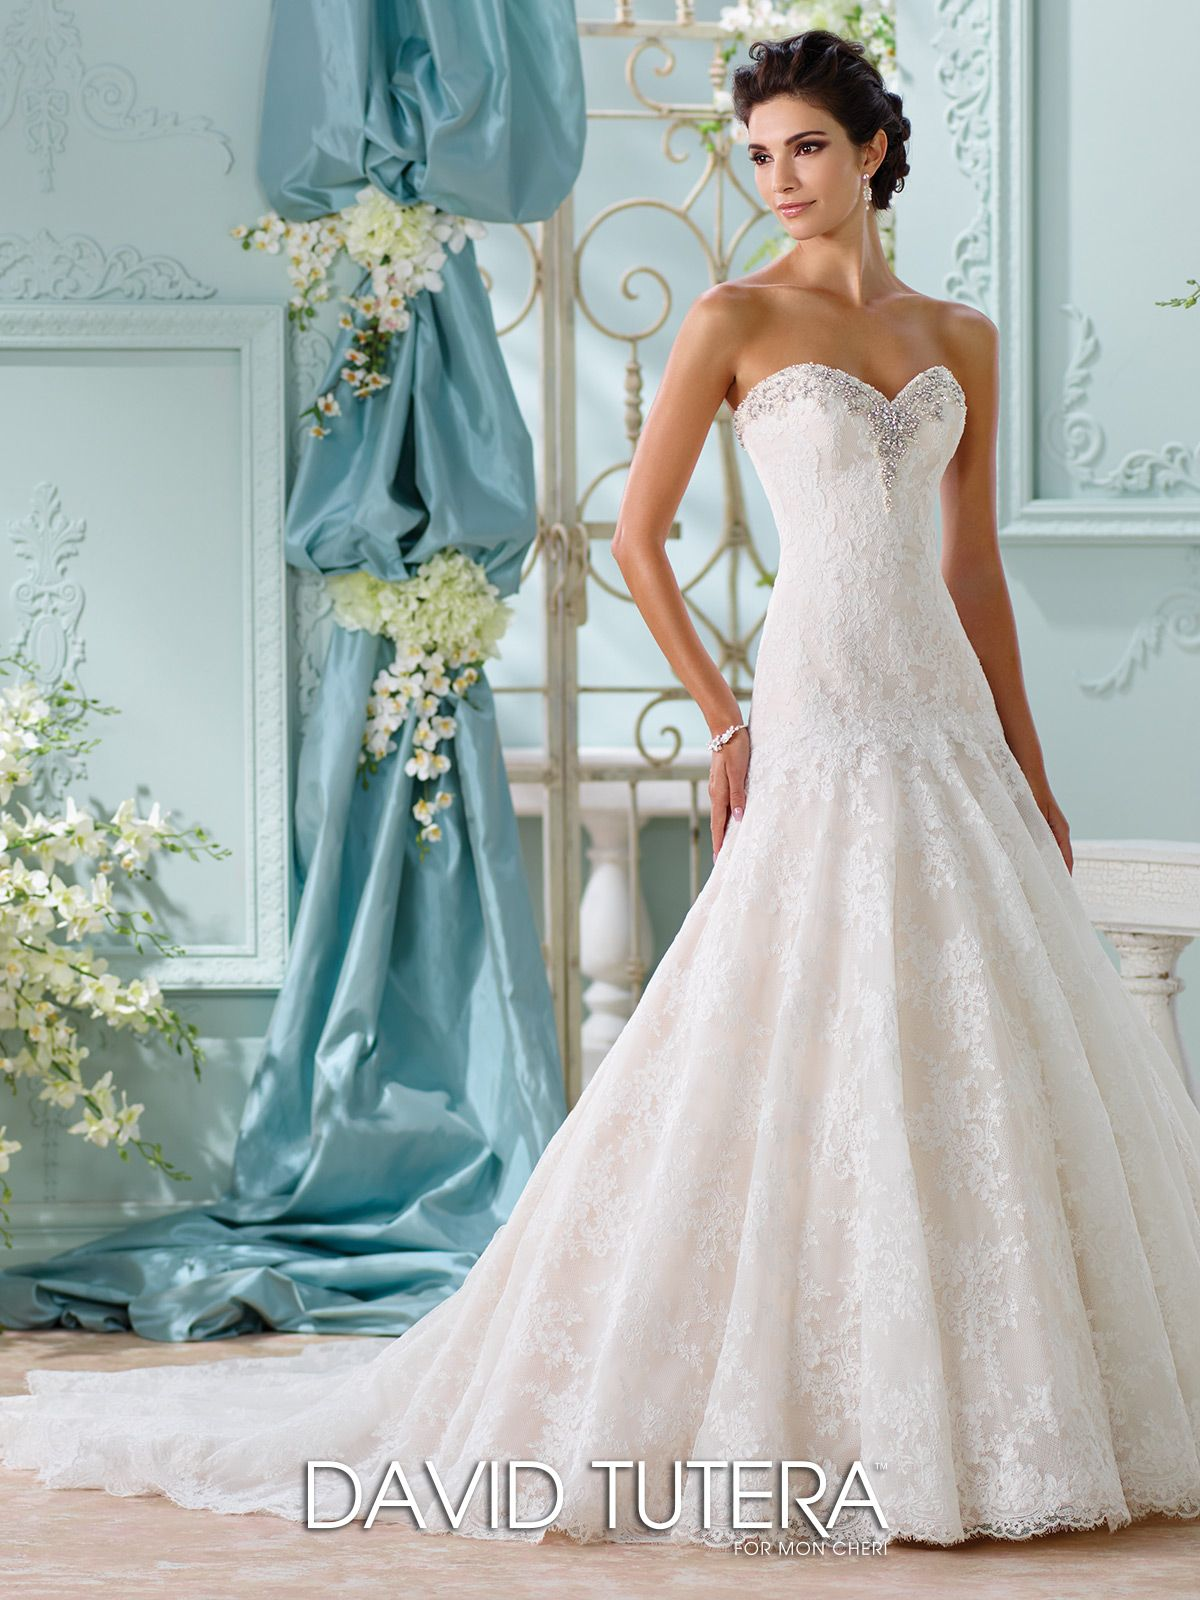 Allover Lace & Beaded A-Line Wedding Dress-116205 Chasca | David ...